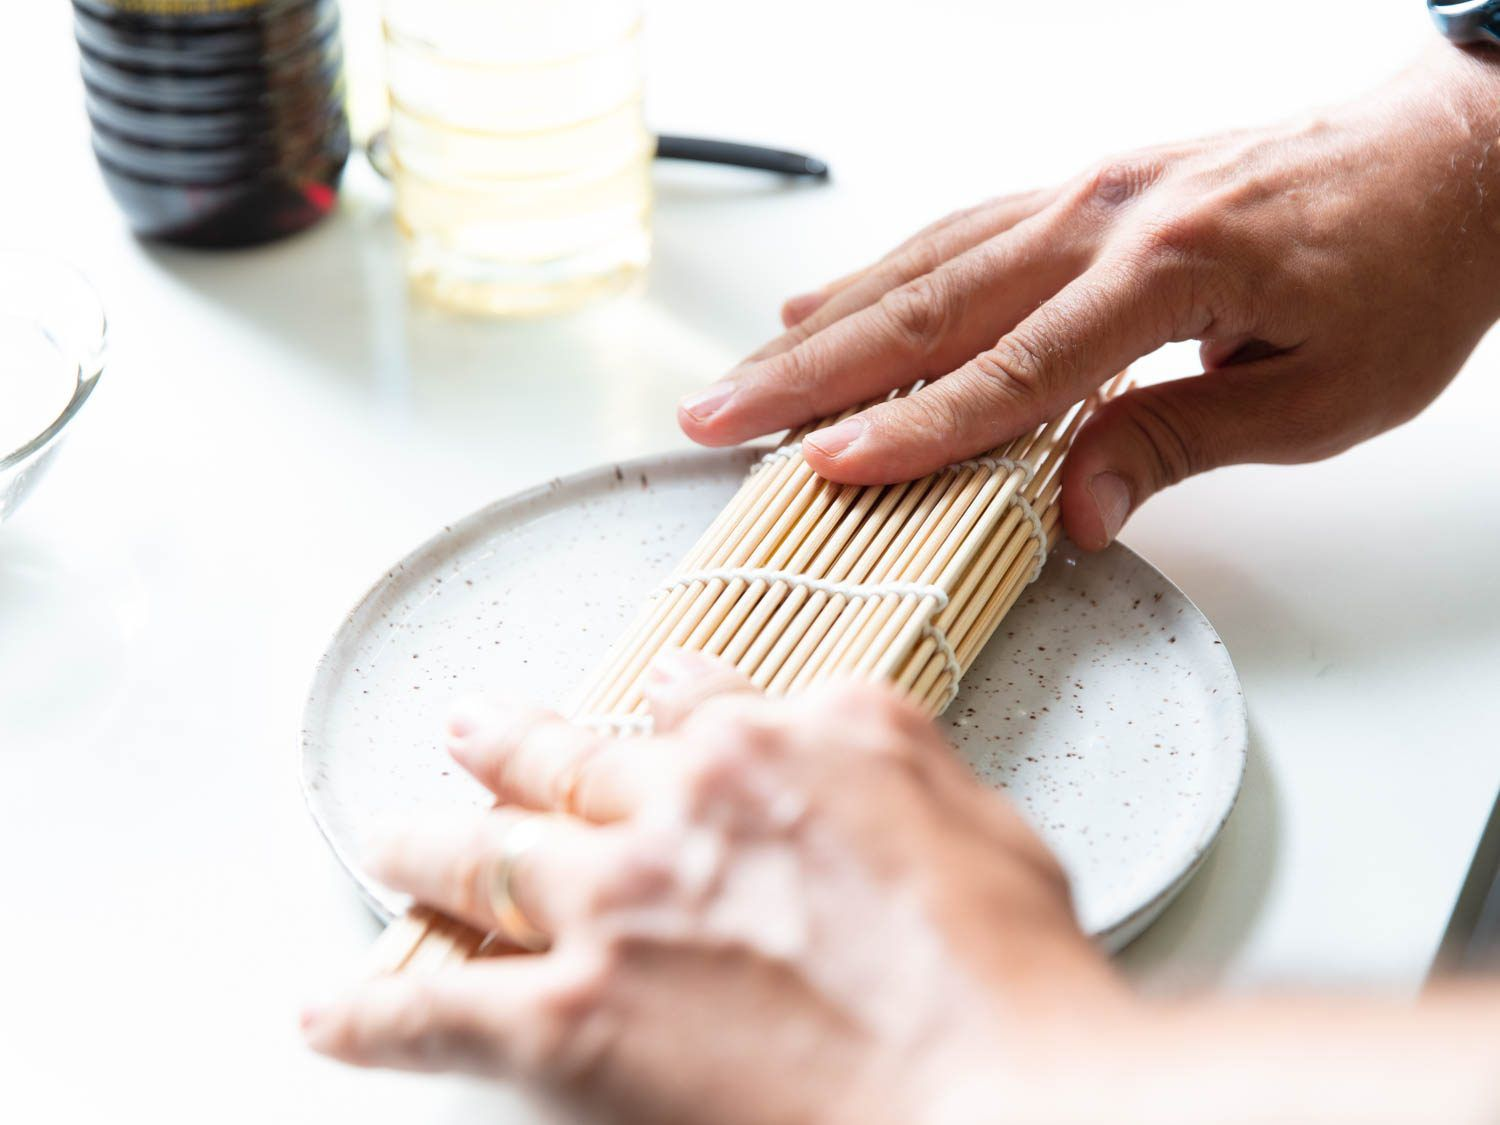 After cooking, tamagoyaki can be rolled up in a bamboo sushi mat to help set its rectangular shape; this photo shows the mat being rolled around the tamagoyaki.